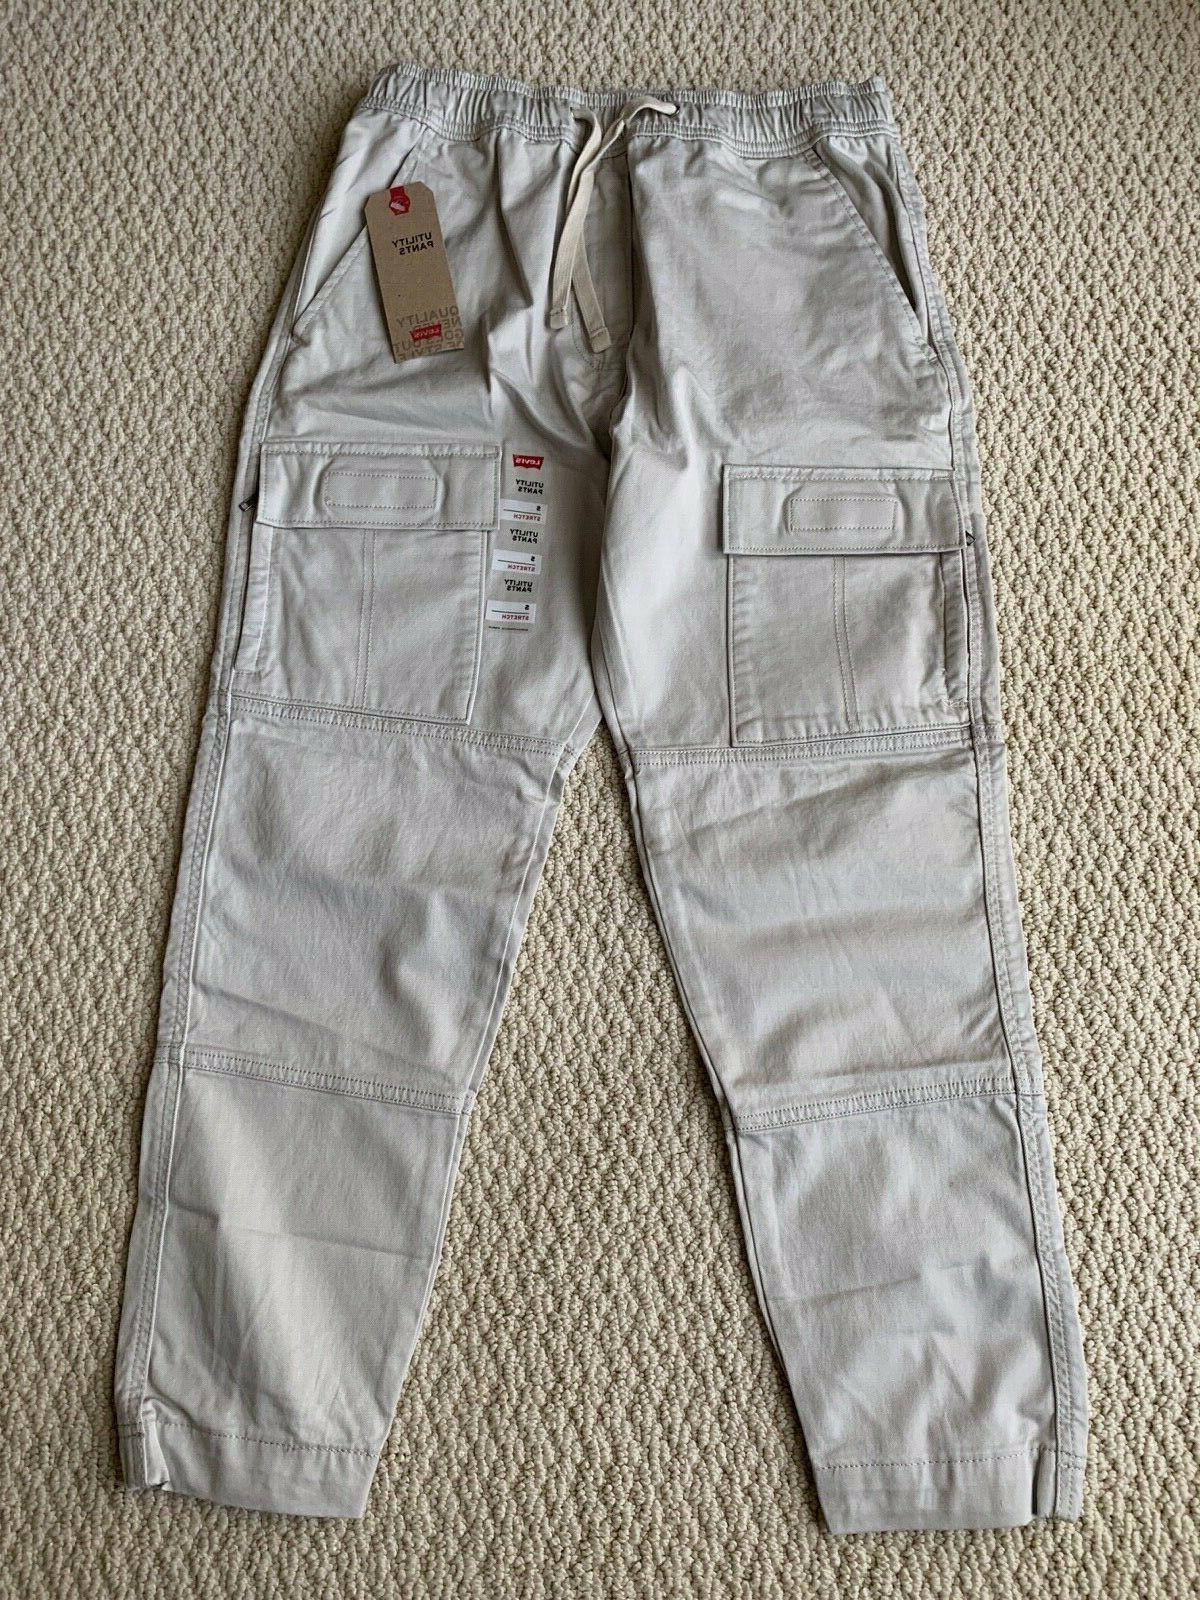 NWT Men's Levi's Stone Gray Utility Pocket Tapered Jogger S-2XL